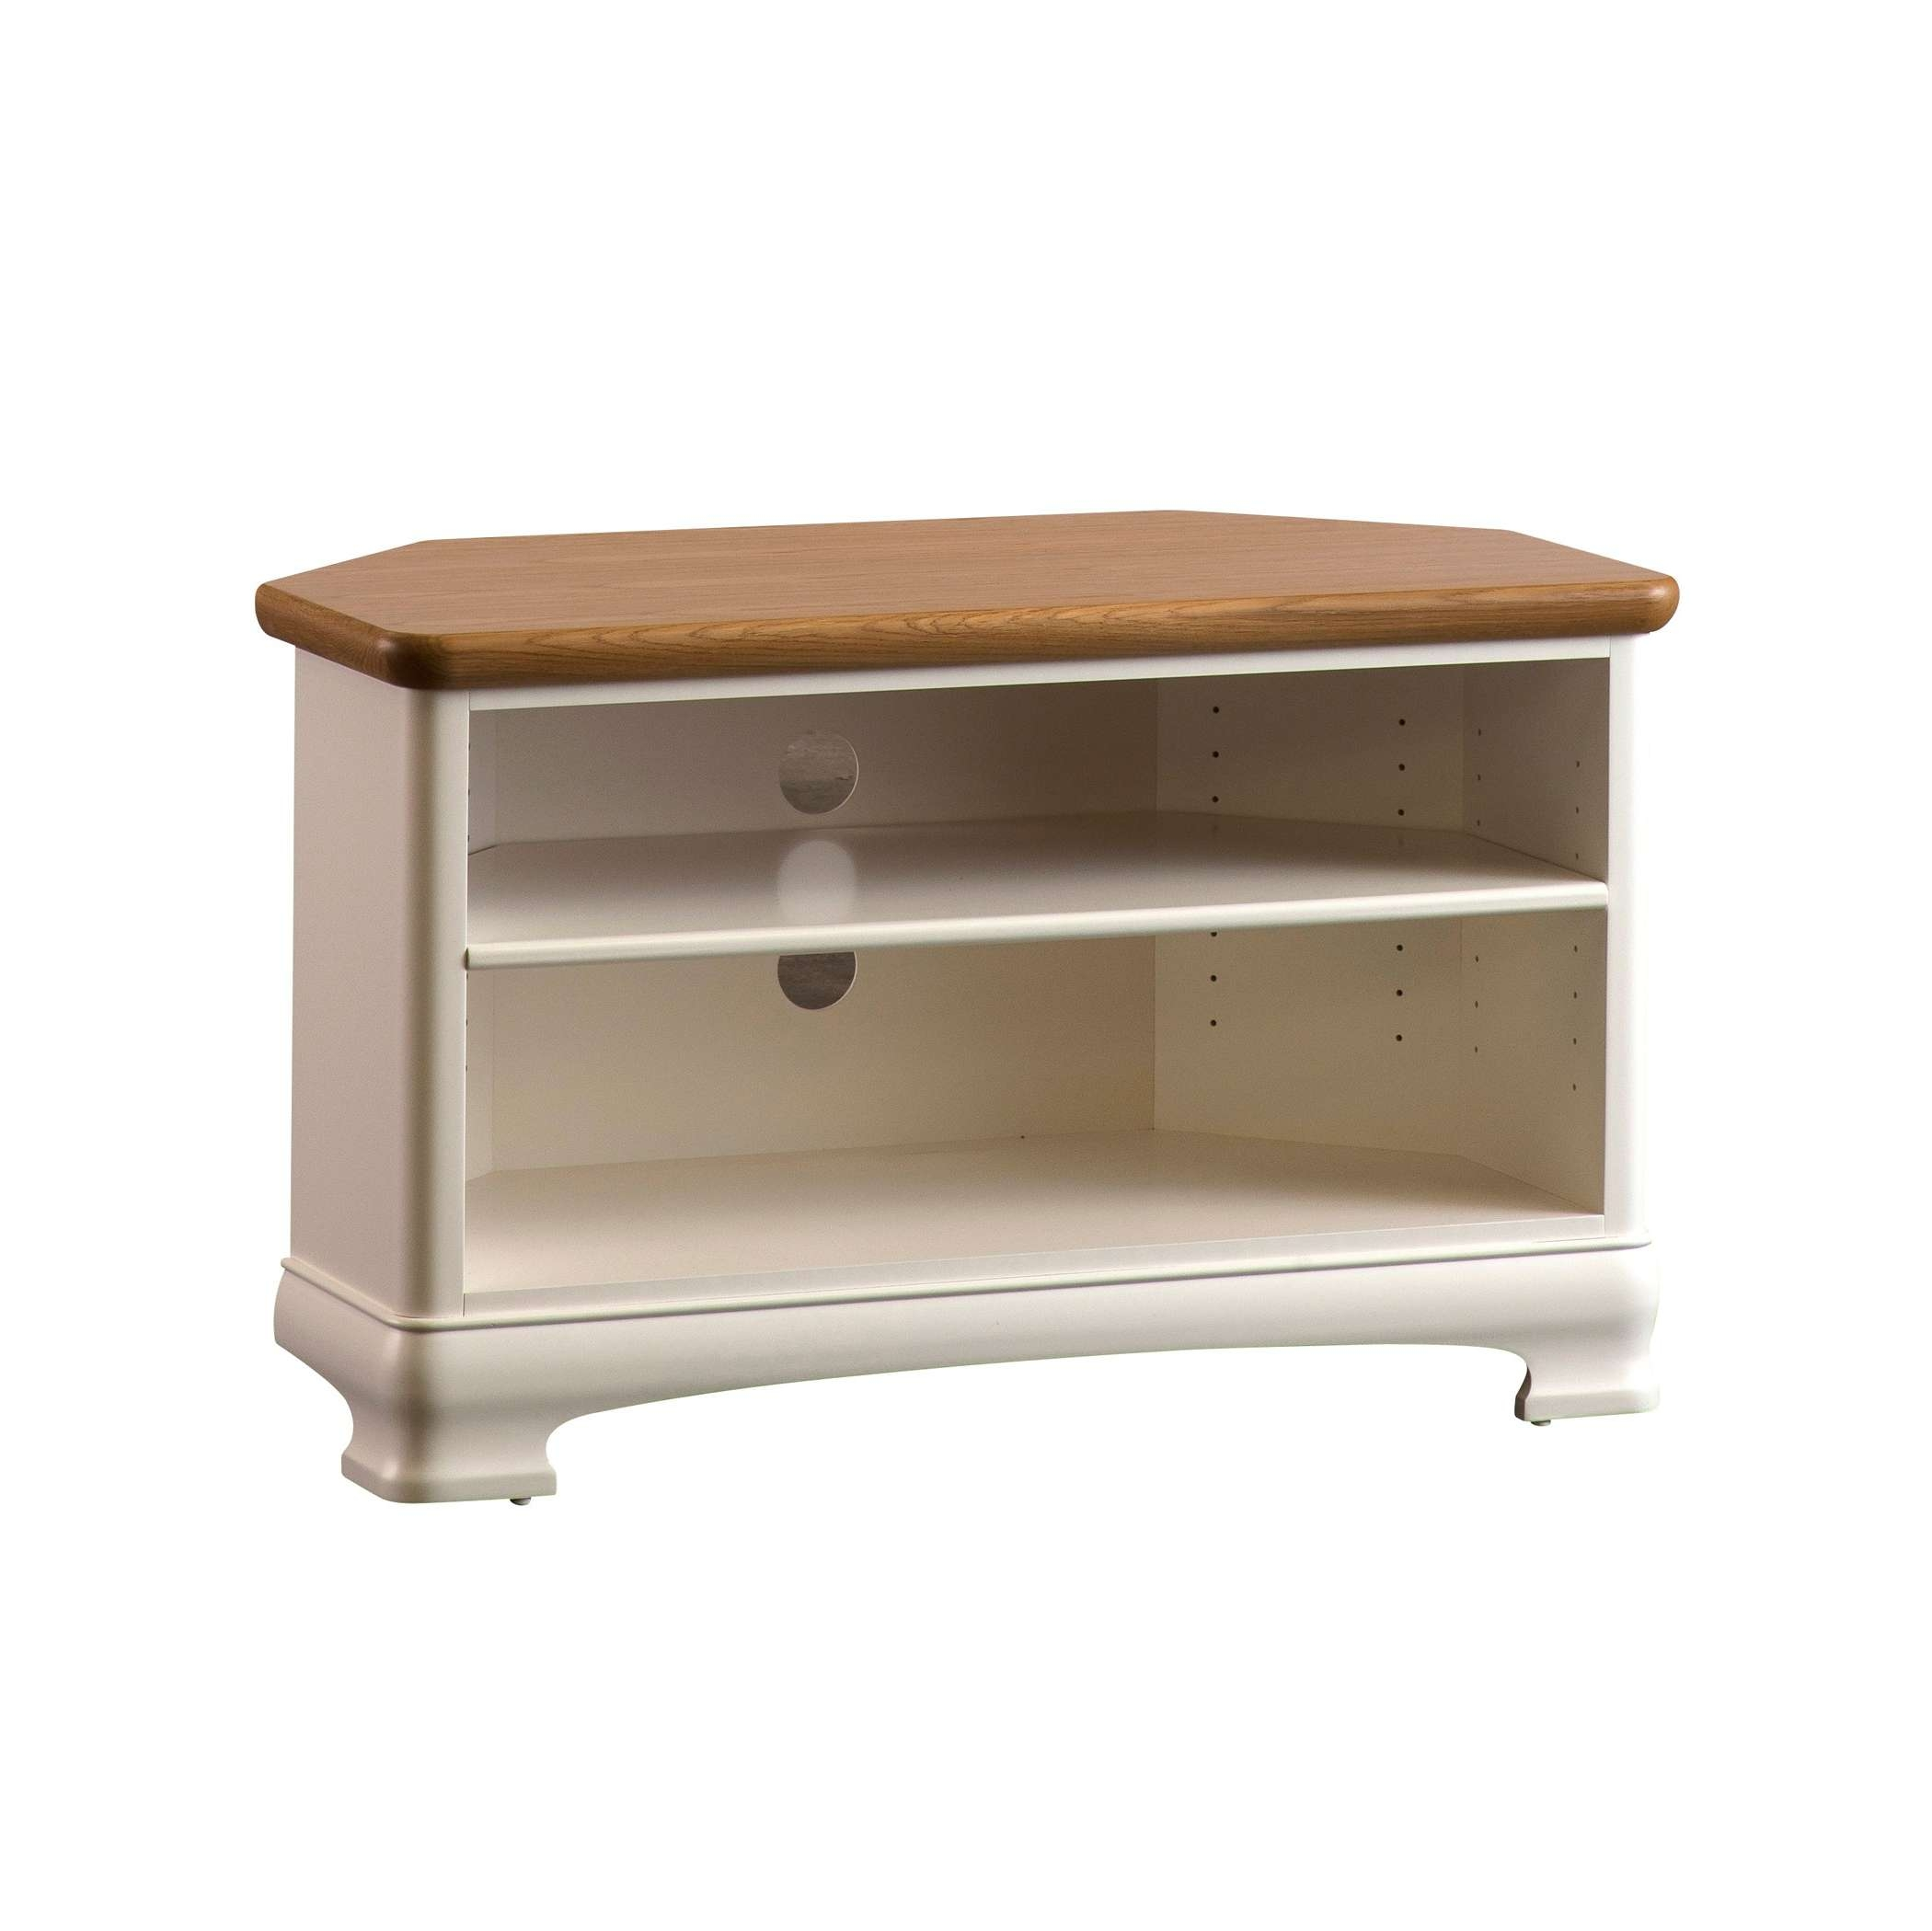 Painted Corner Tv Stand | Gola Furniture Uk With Regard To Painted Tv Stands (View 10 of 15)